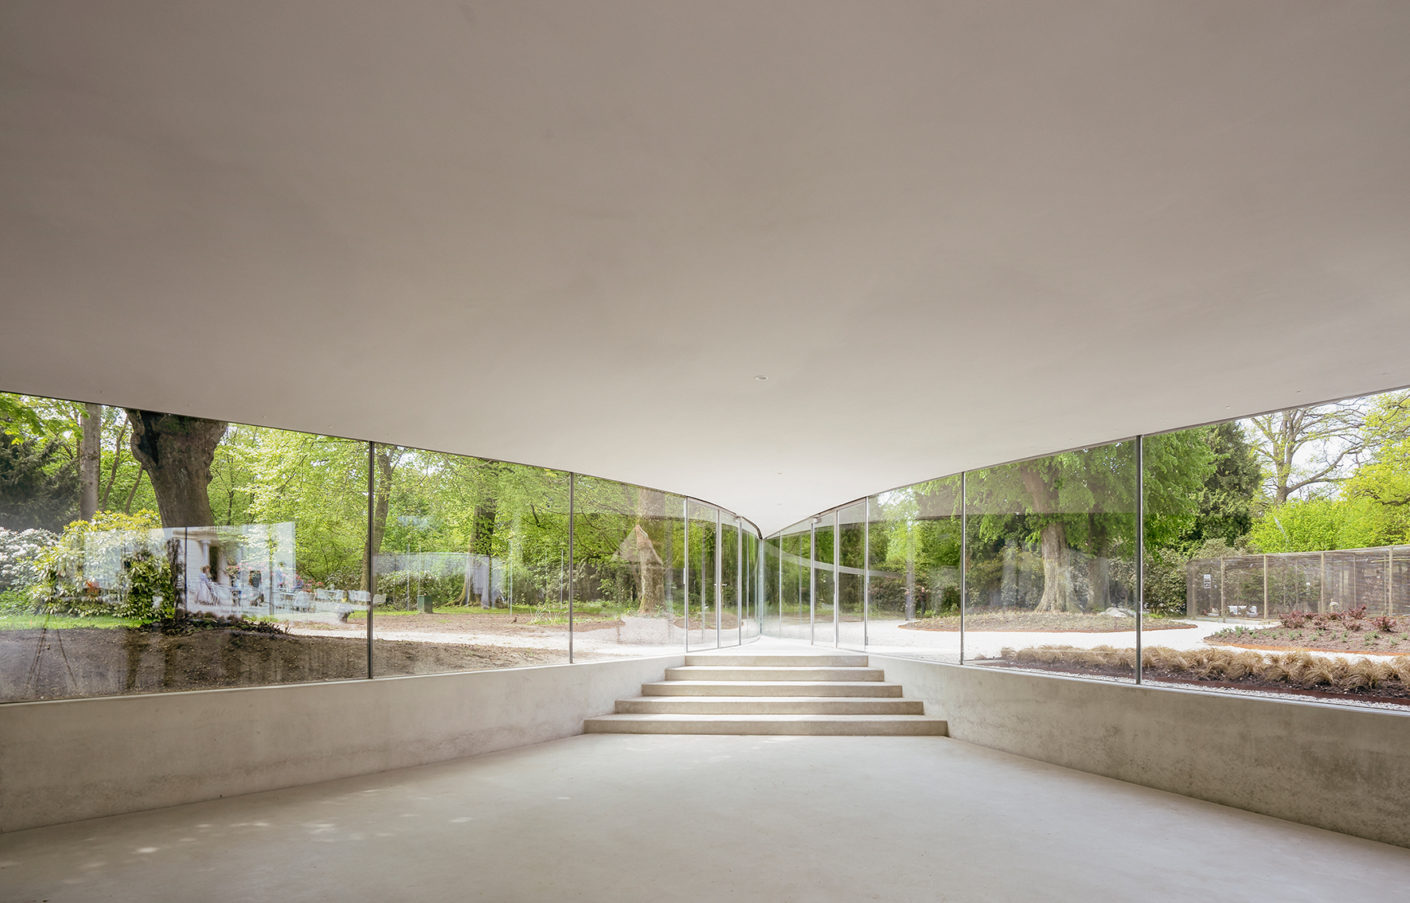 The visitor centre of the Groot Vijversburg park in Tytsjerk in the Netherlands from 2012 was celebrated internationally.